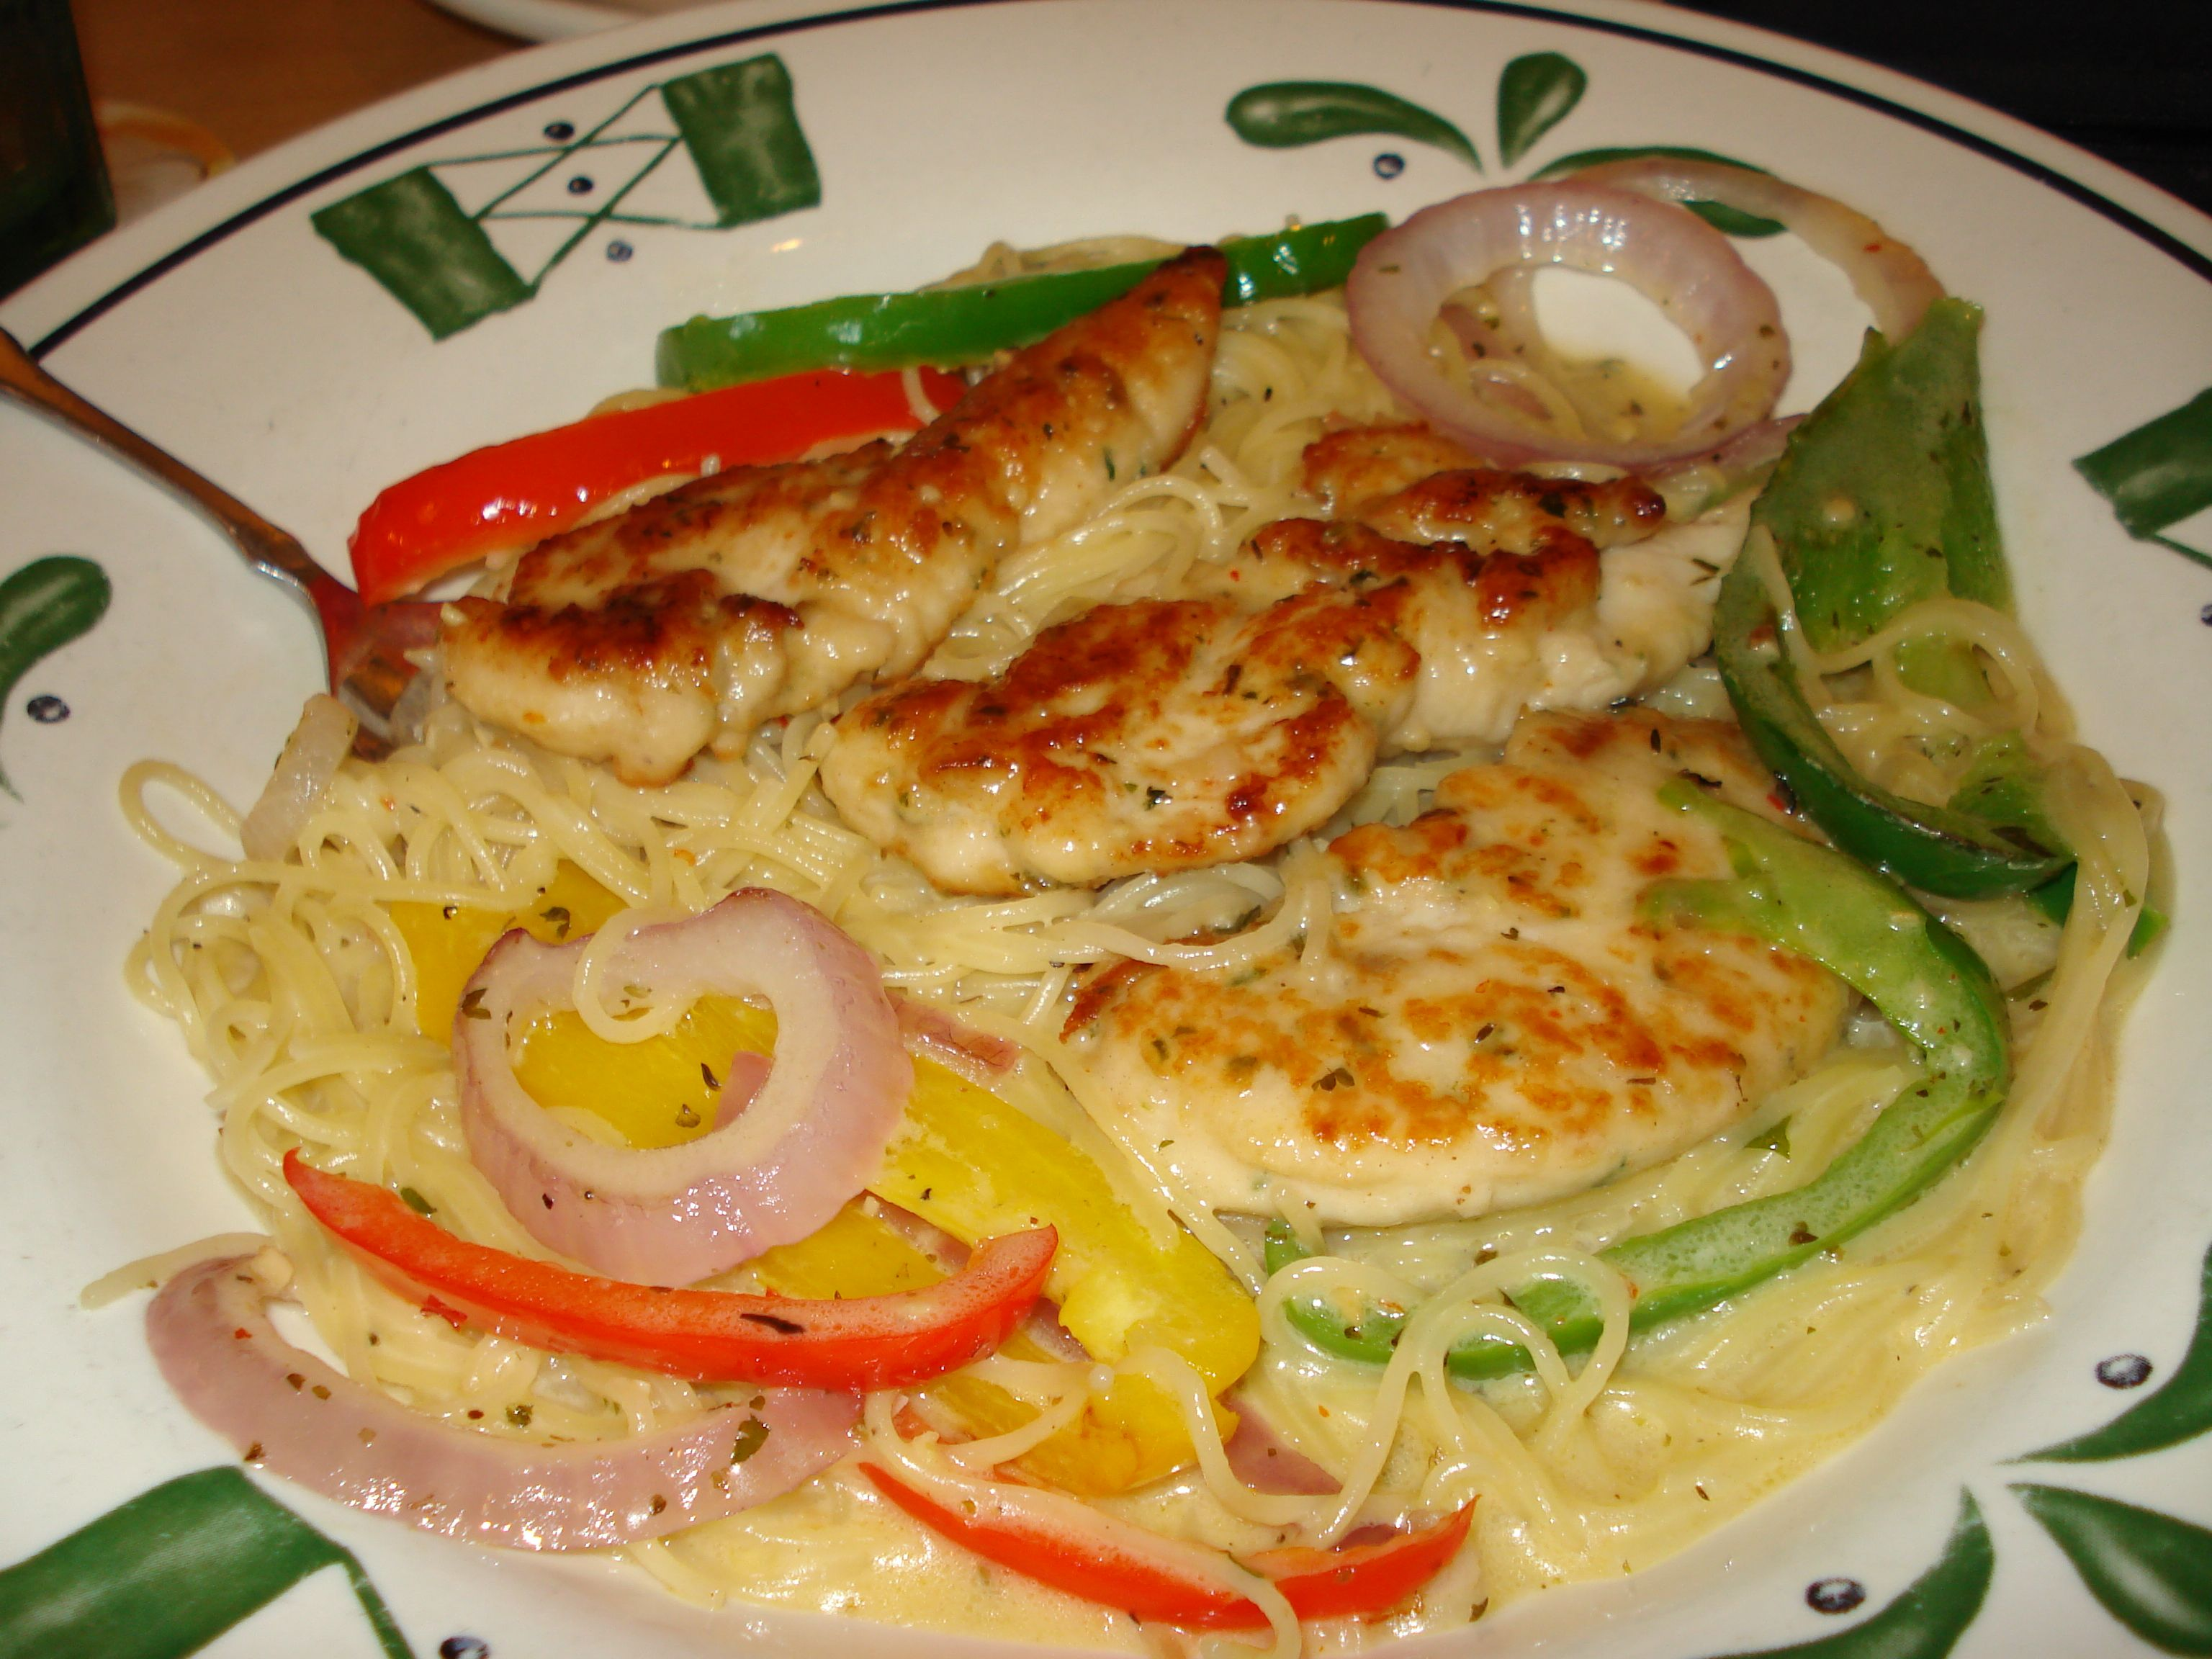 Pasta Recipes Chicken Scampi O G Style C From The Lips To The Hips Pinterest